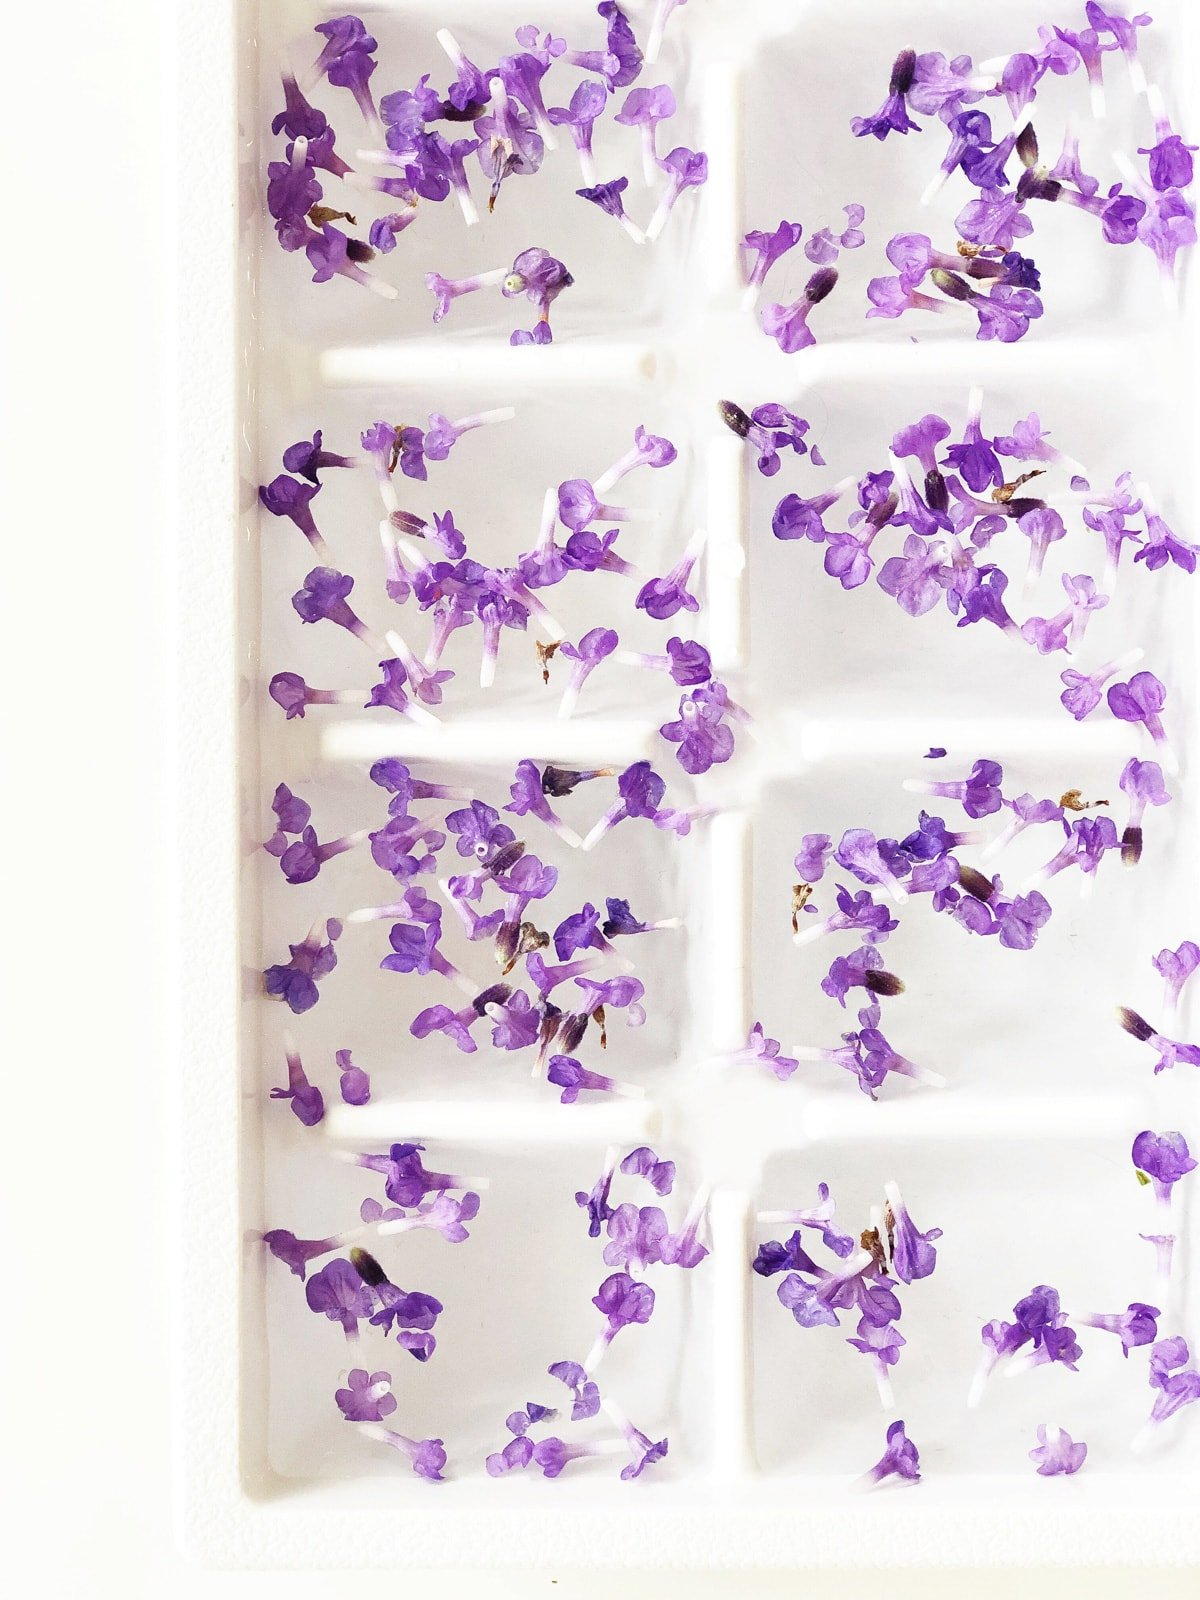 How to Make Lavender Petal Ice Cubes